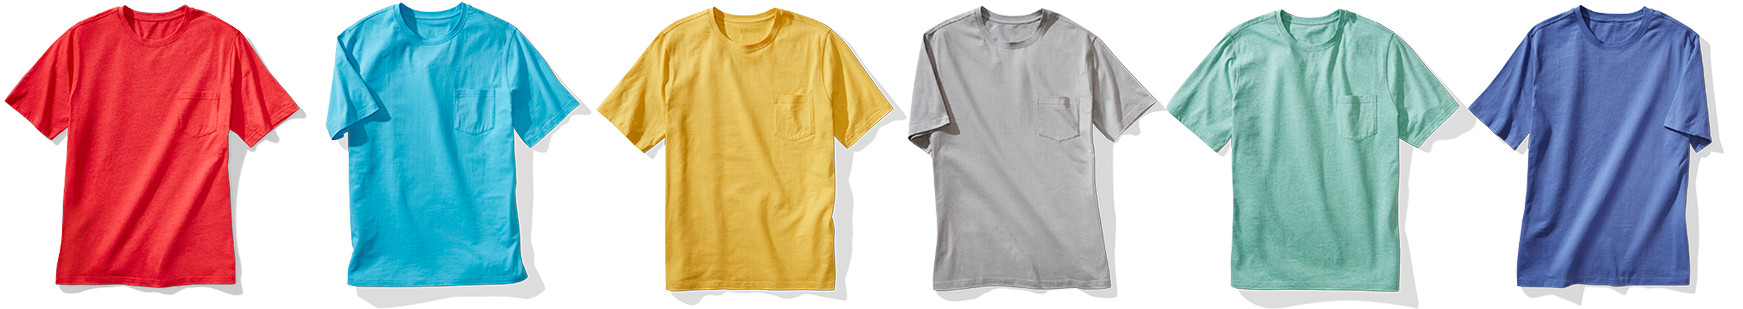 SHORT-SLEEVE TEES $19.99 EACH WHEN YOU BUY 2 OR MORE